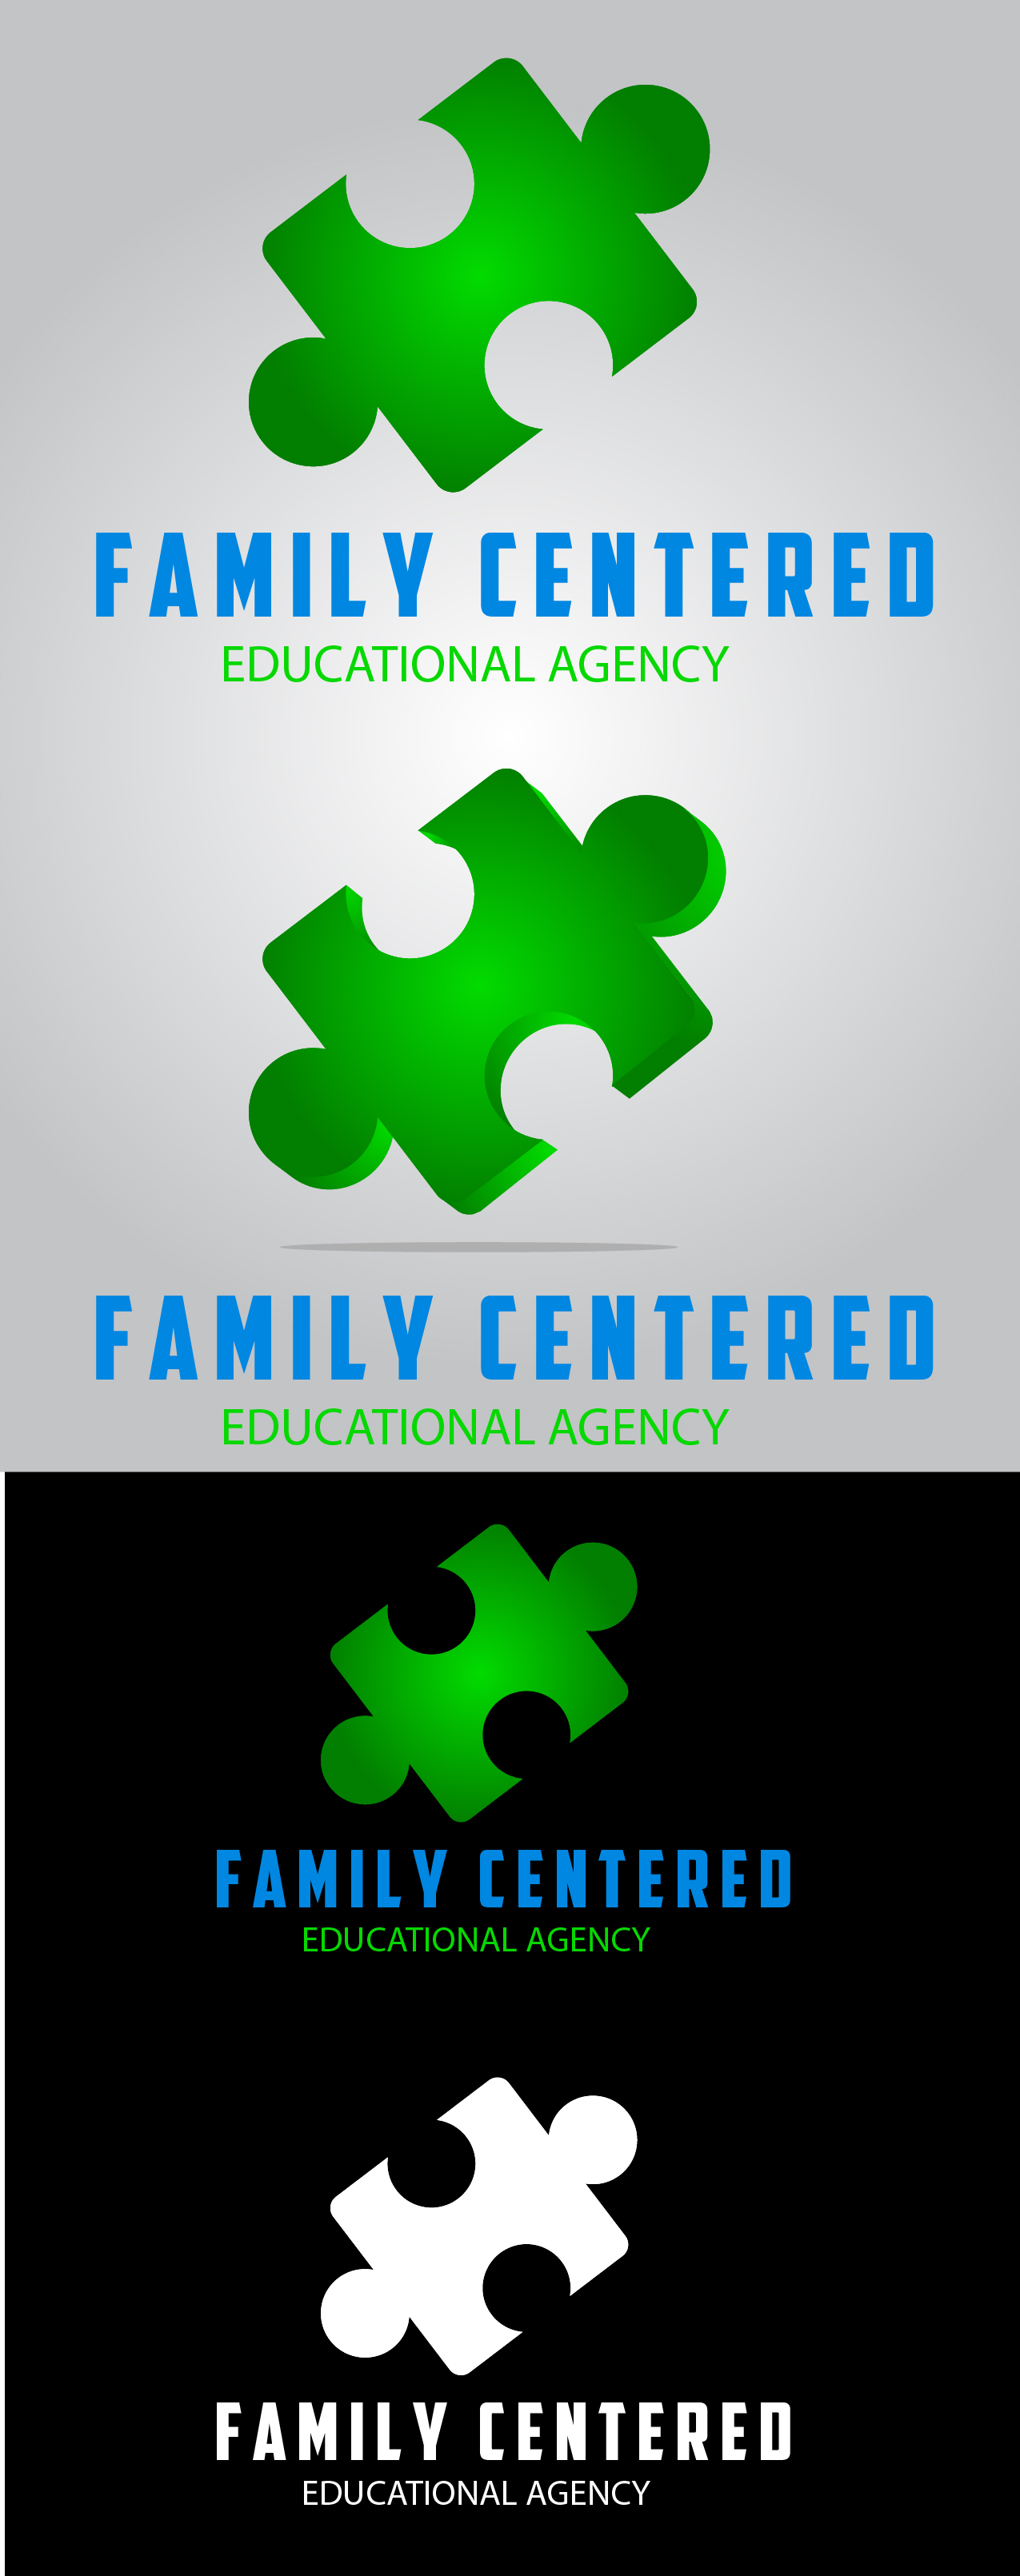 Logo Design by mediaproductionart - Entry No. 27 in the Logo Design Contest Captivating Logo Design for Family Centered Educational Agency.